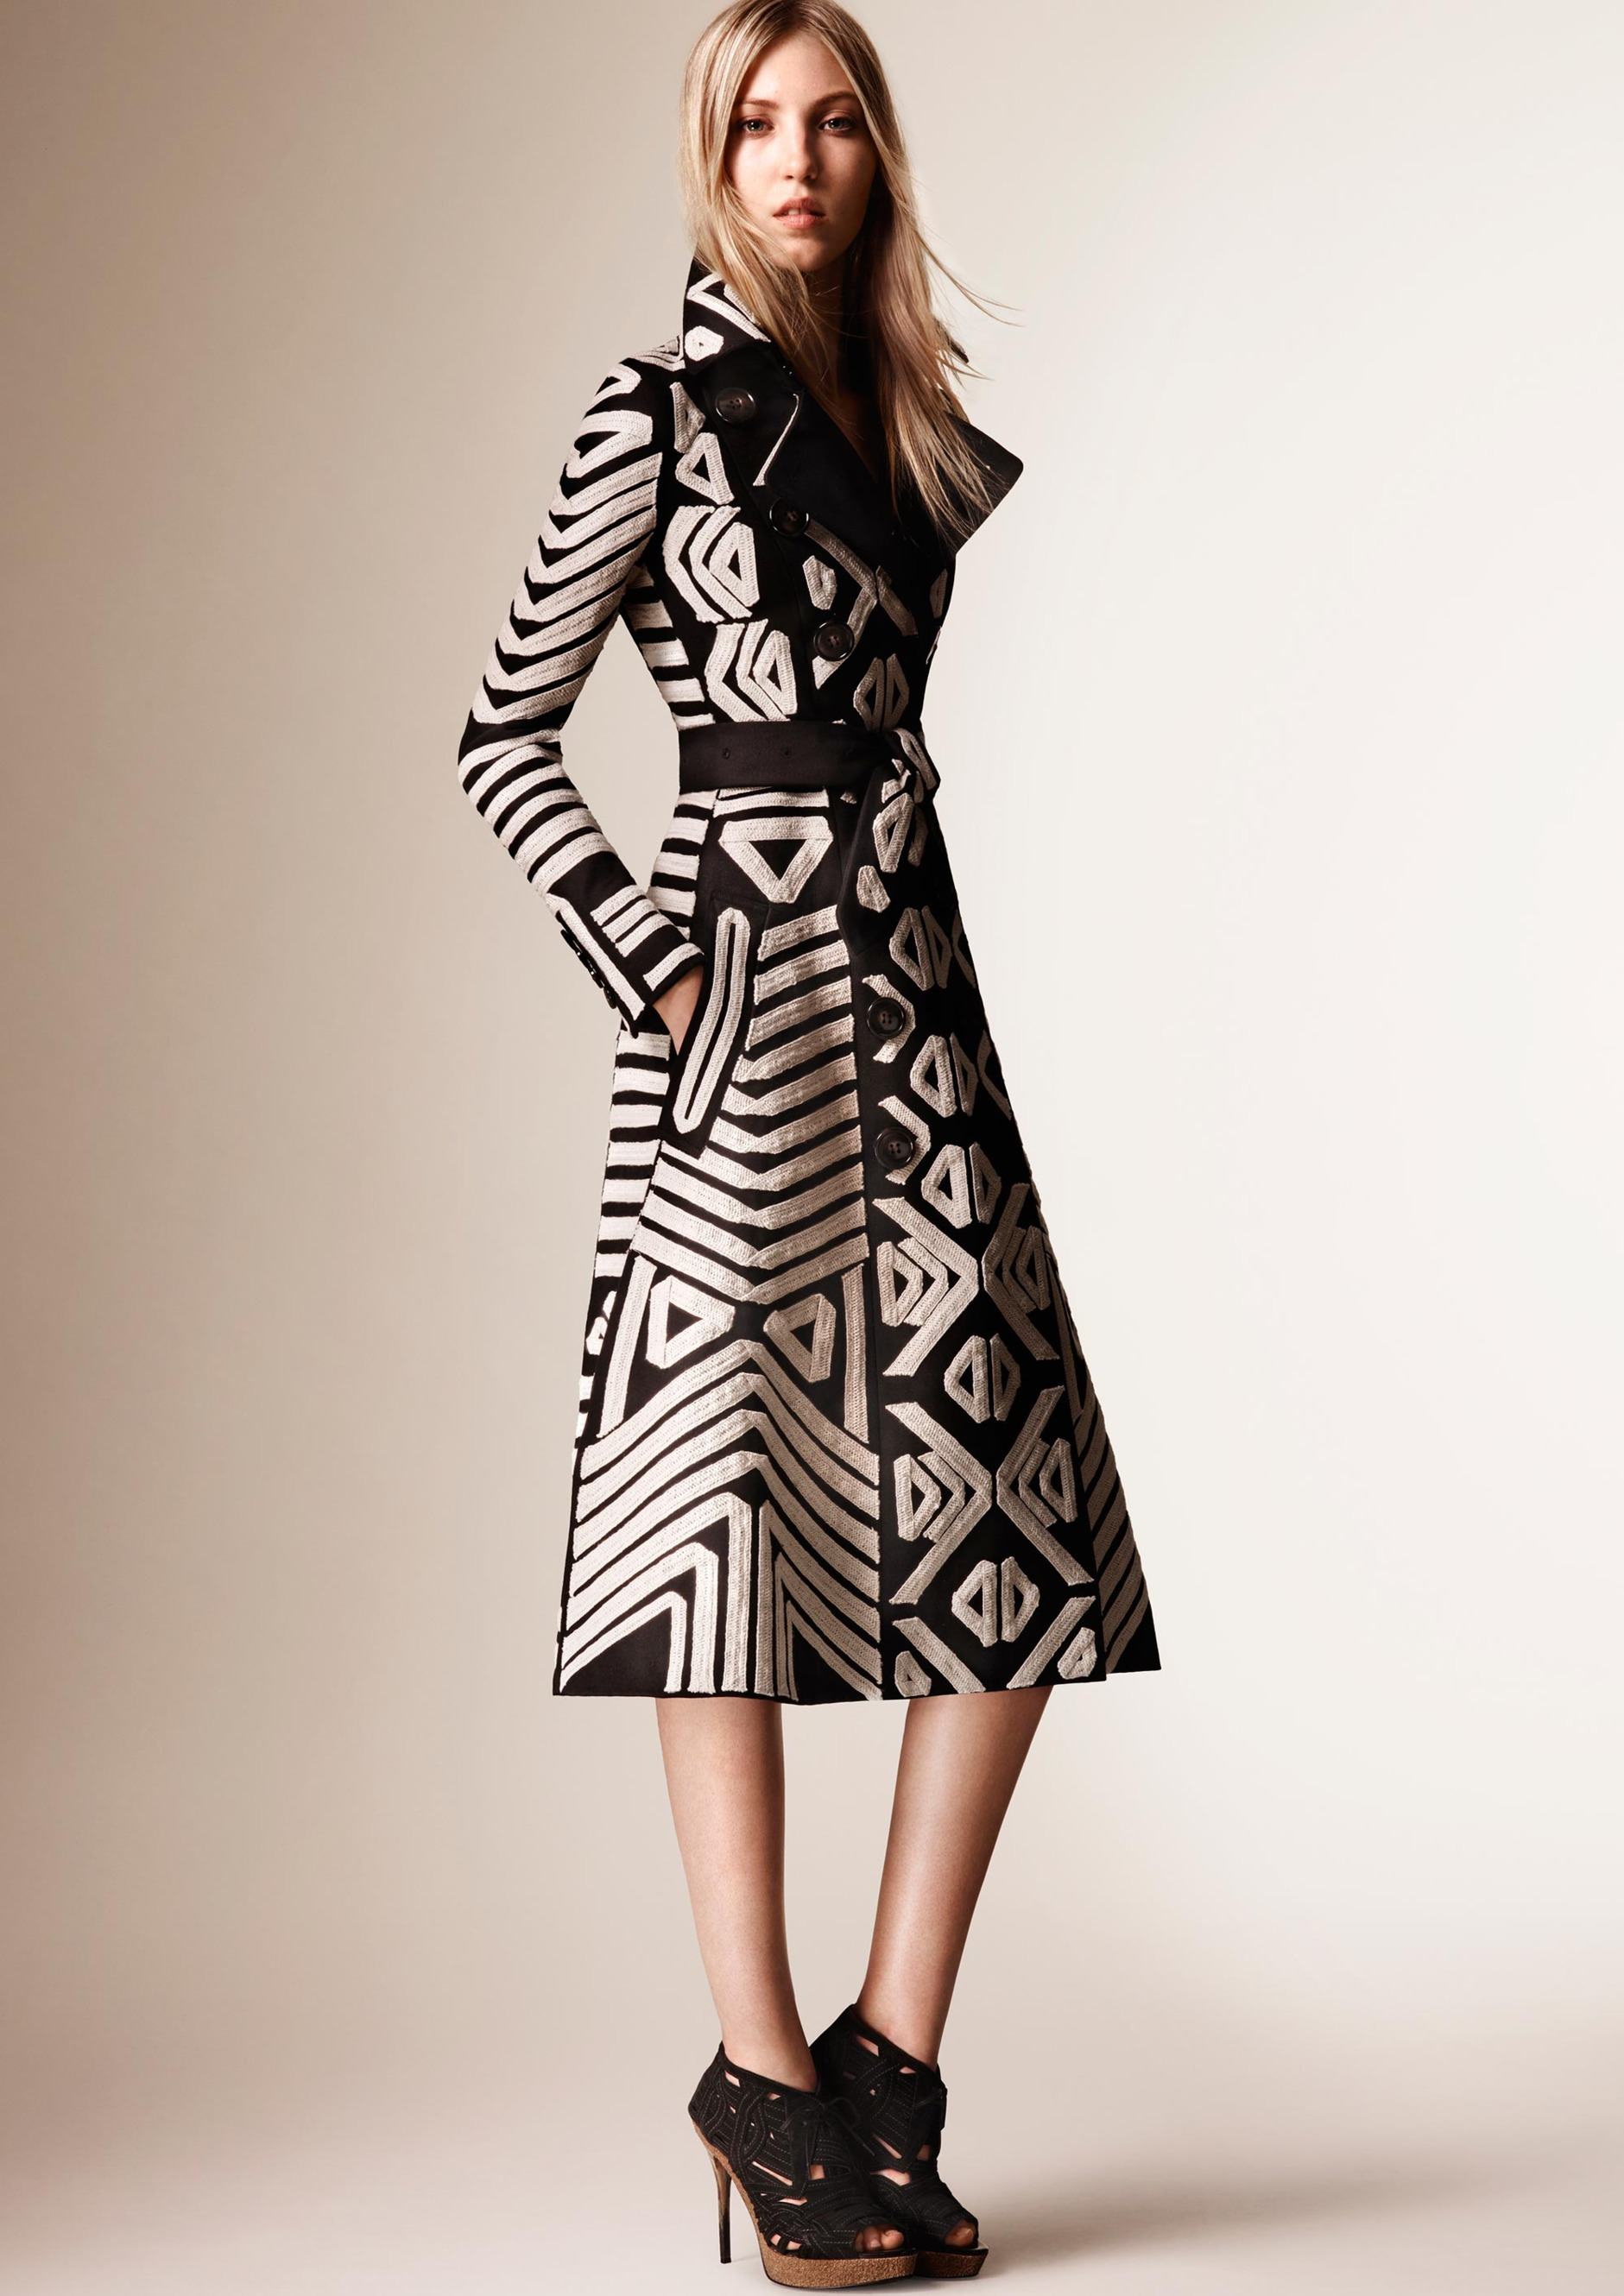 Burberry Prorsum 2016 resort collection